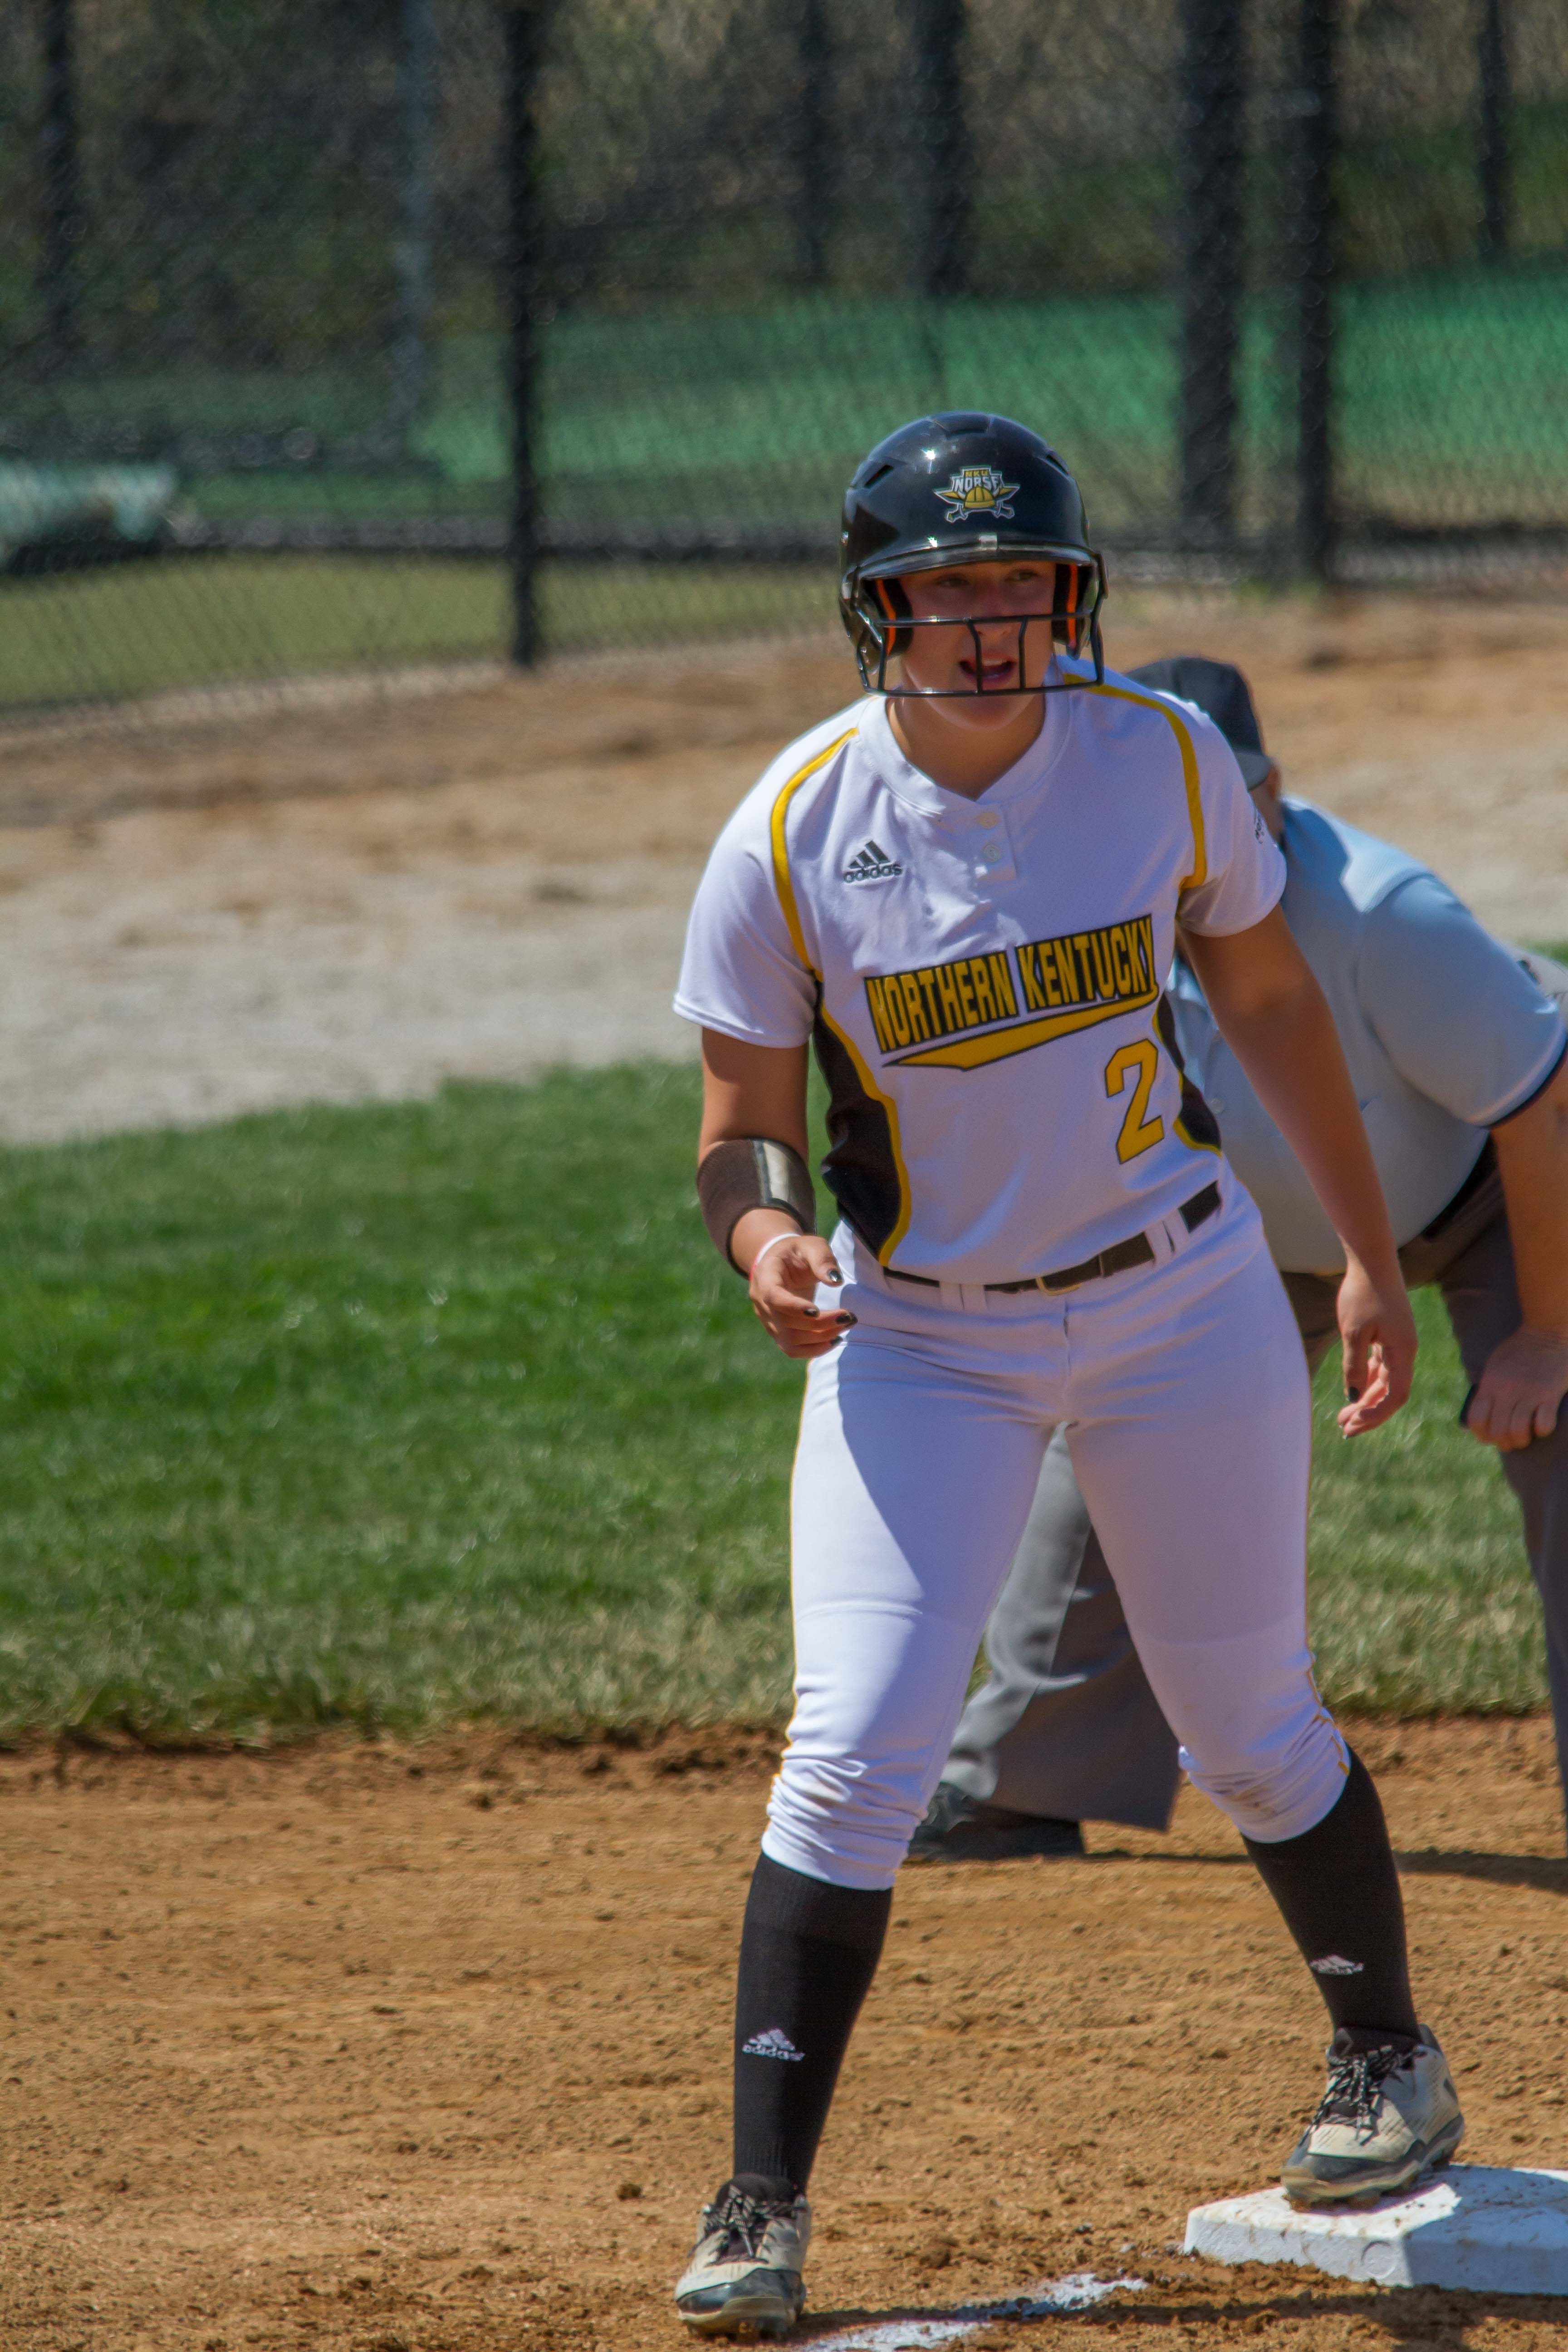 Ava+Lawson+leads+off+after+reaching+base+against+Youngstown+State